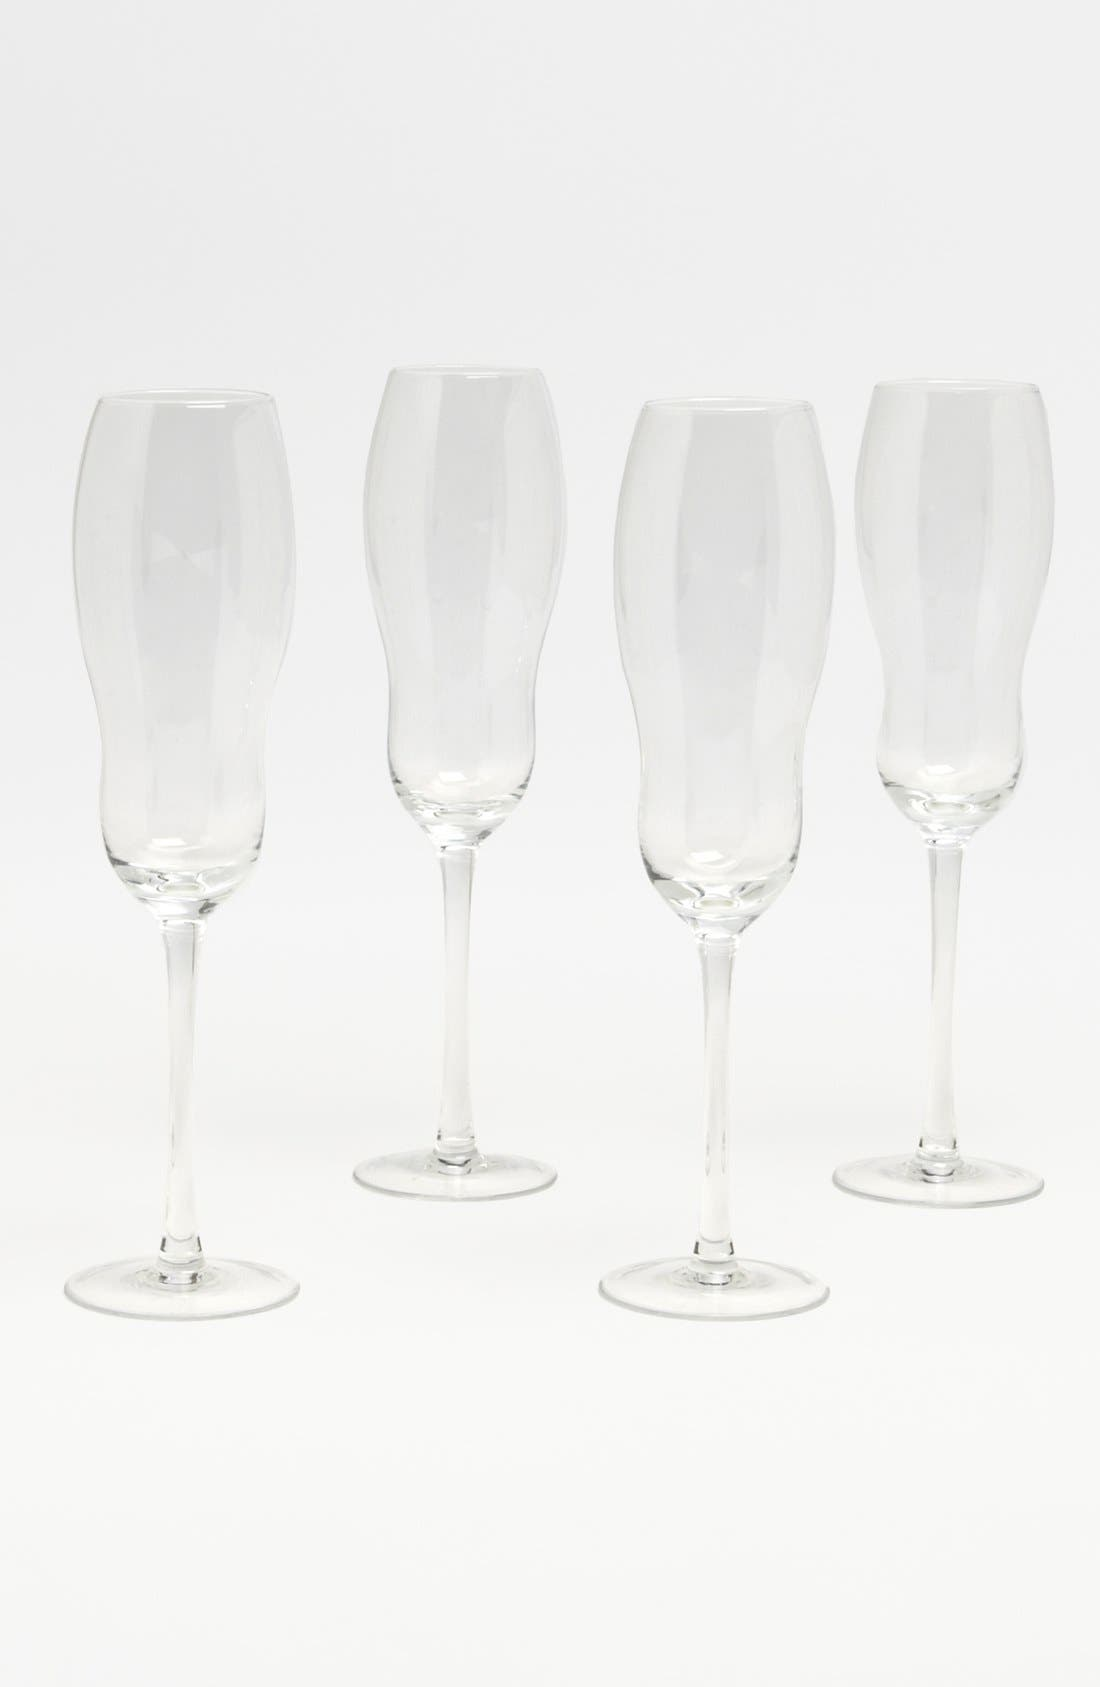 Main Image - 'Bubble' Champagne Flutes (Set of 4)